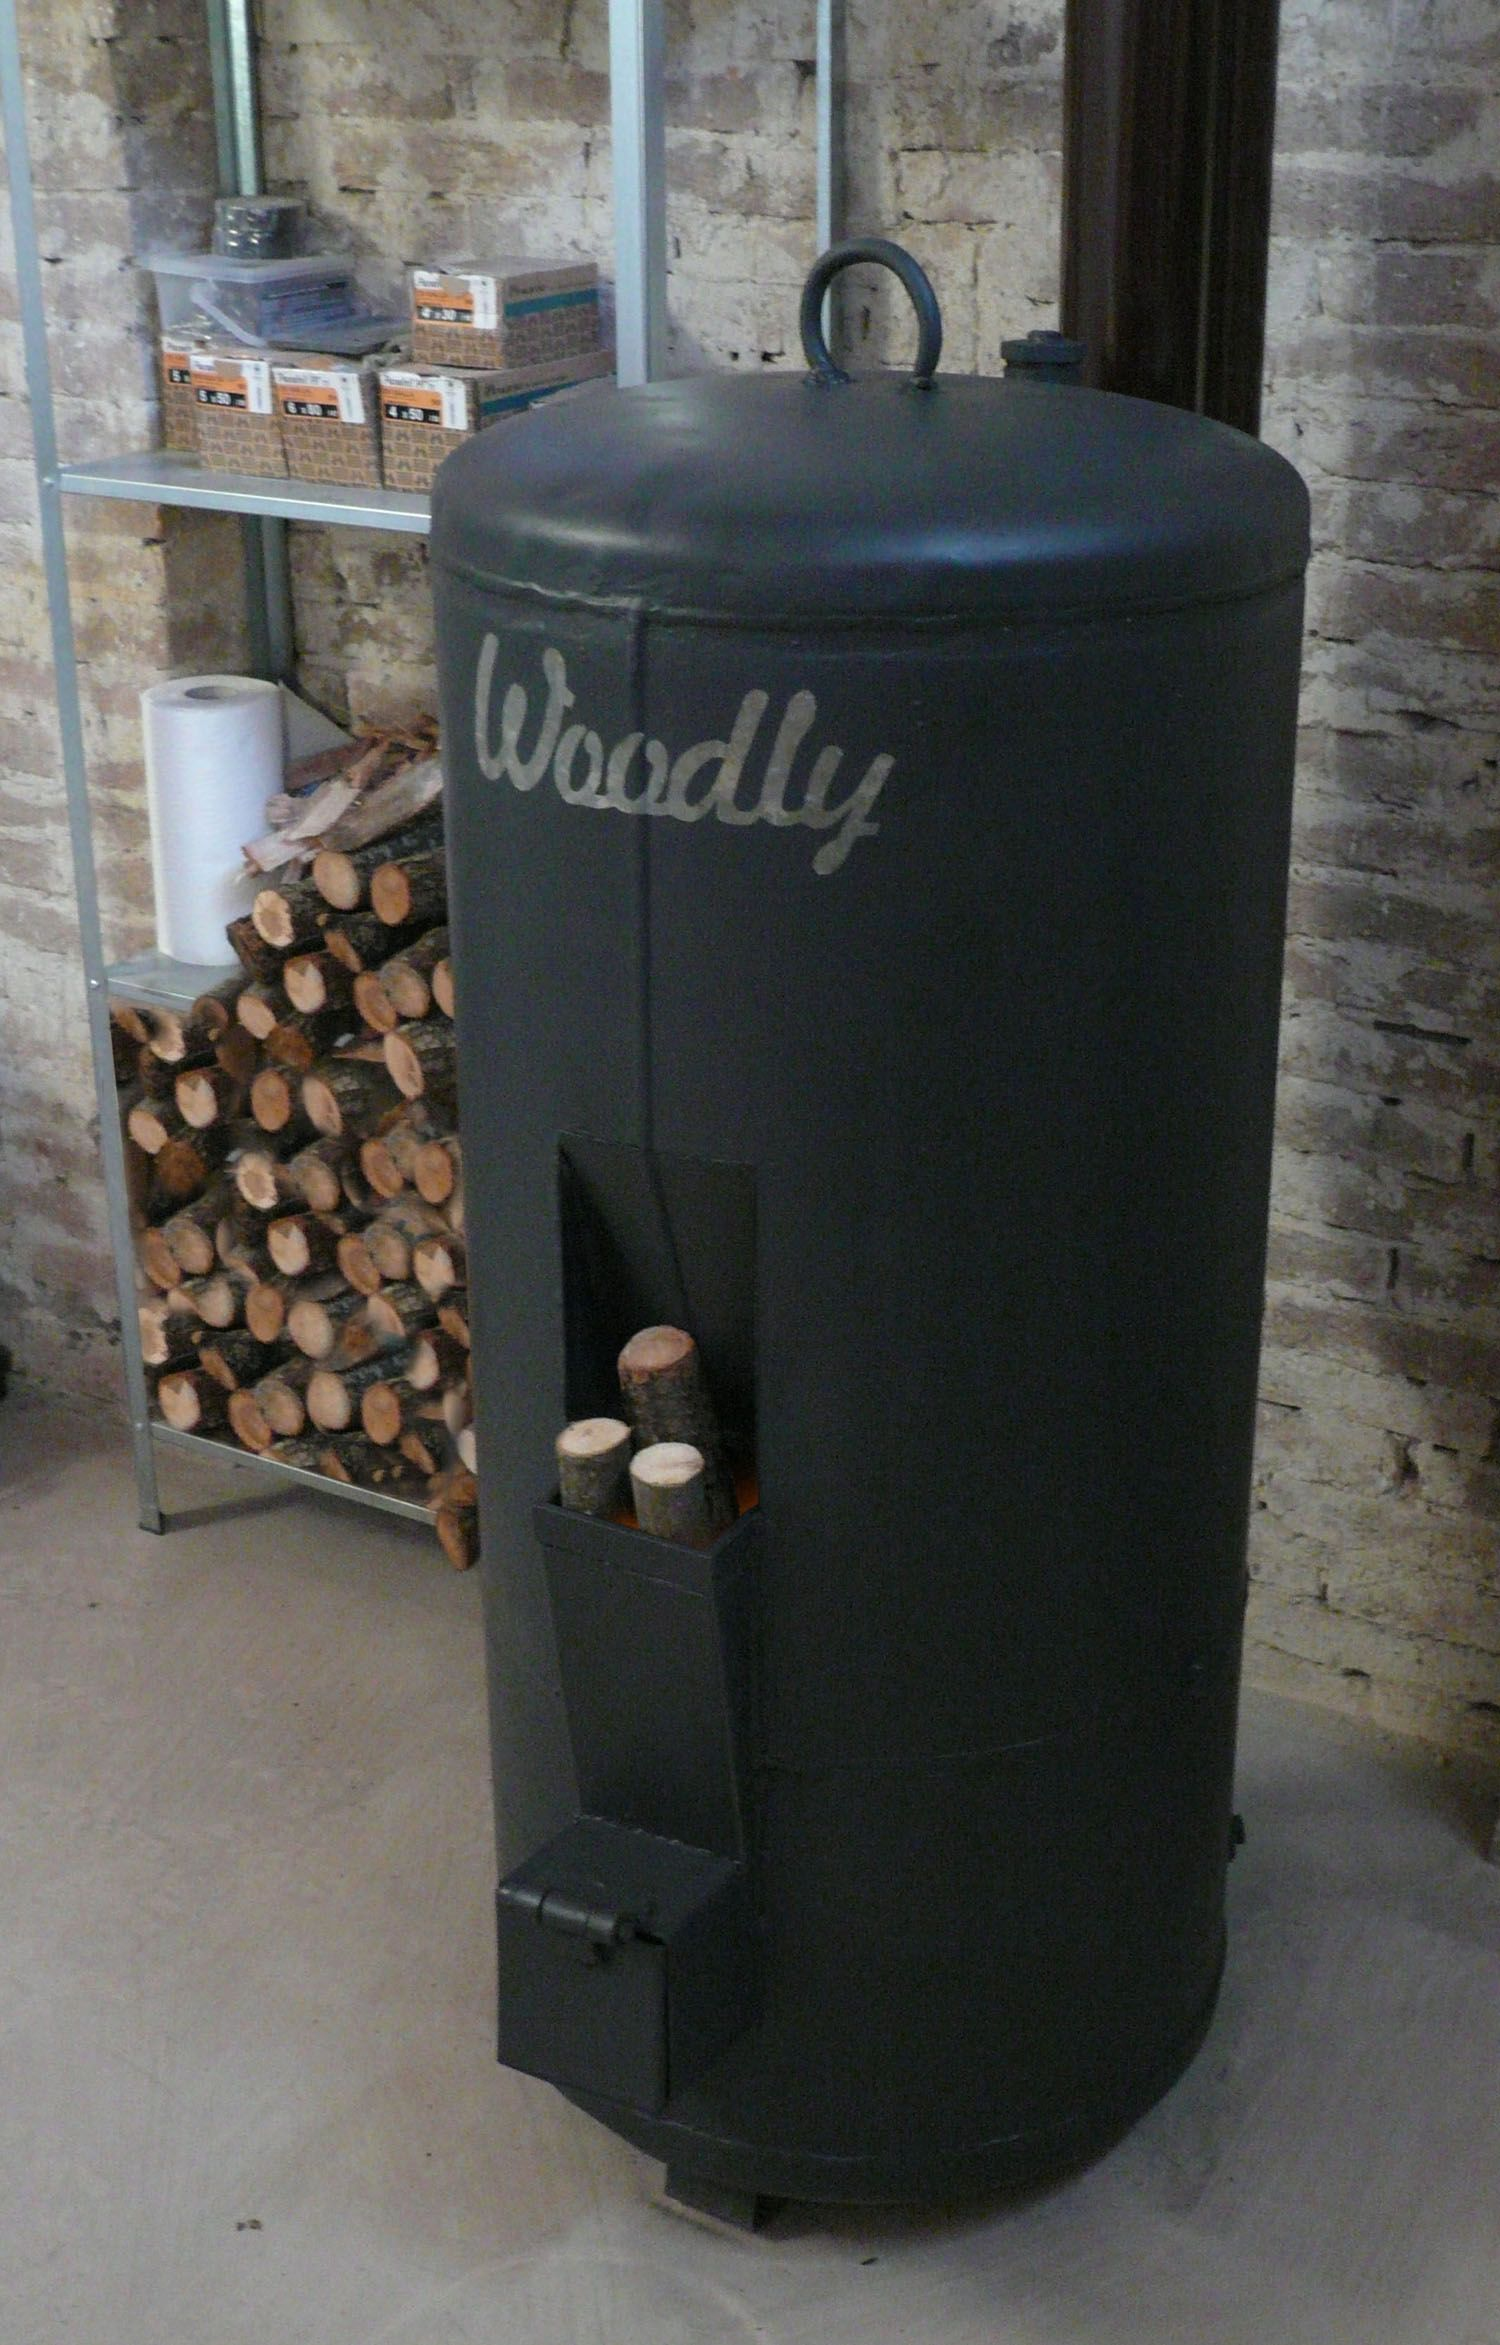 Stove Poele A Pellet The Rocket Stove Just Finished Rocket Stove Heater In